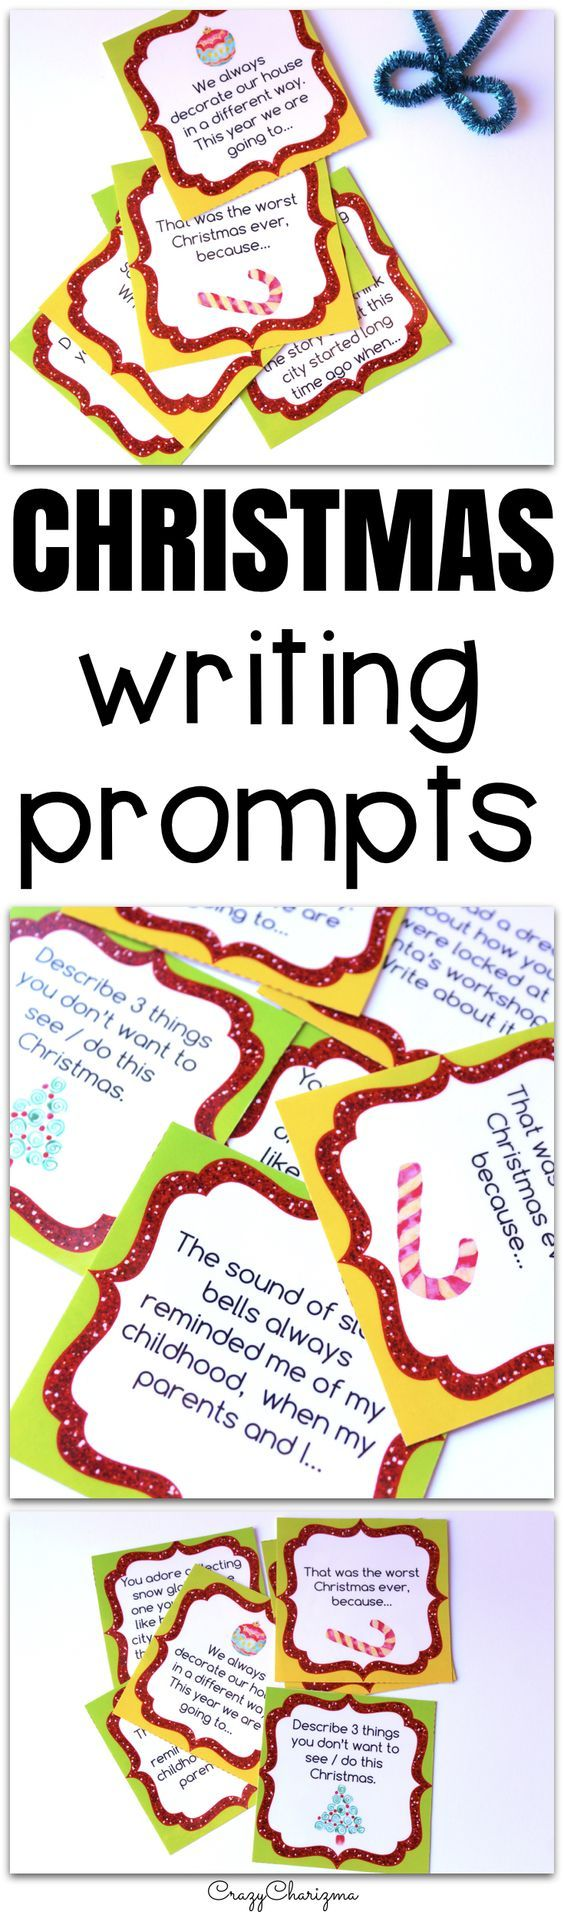 Celebrate Christmas in your classroom and provide students with writing tasks and ideas. The packet contains narrative, informational and opinion writing prompts for teens. The prompts can be used as Writing Centers, as well as with adults during ESL lessons.